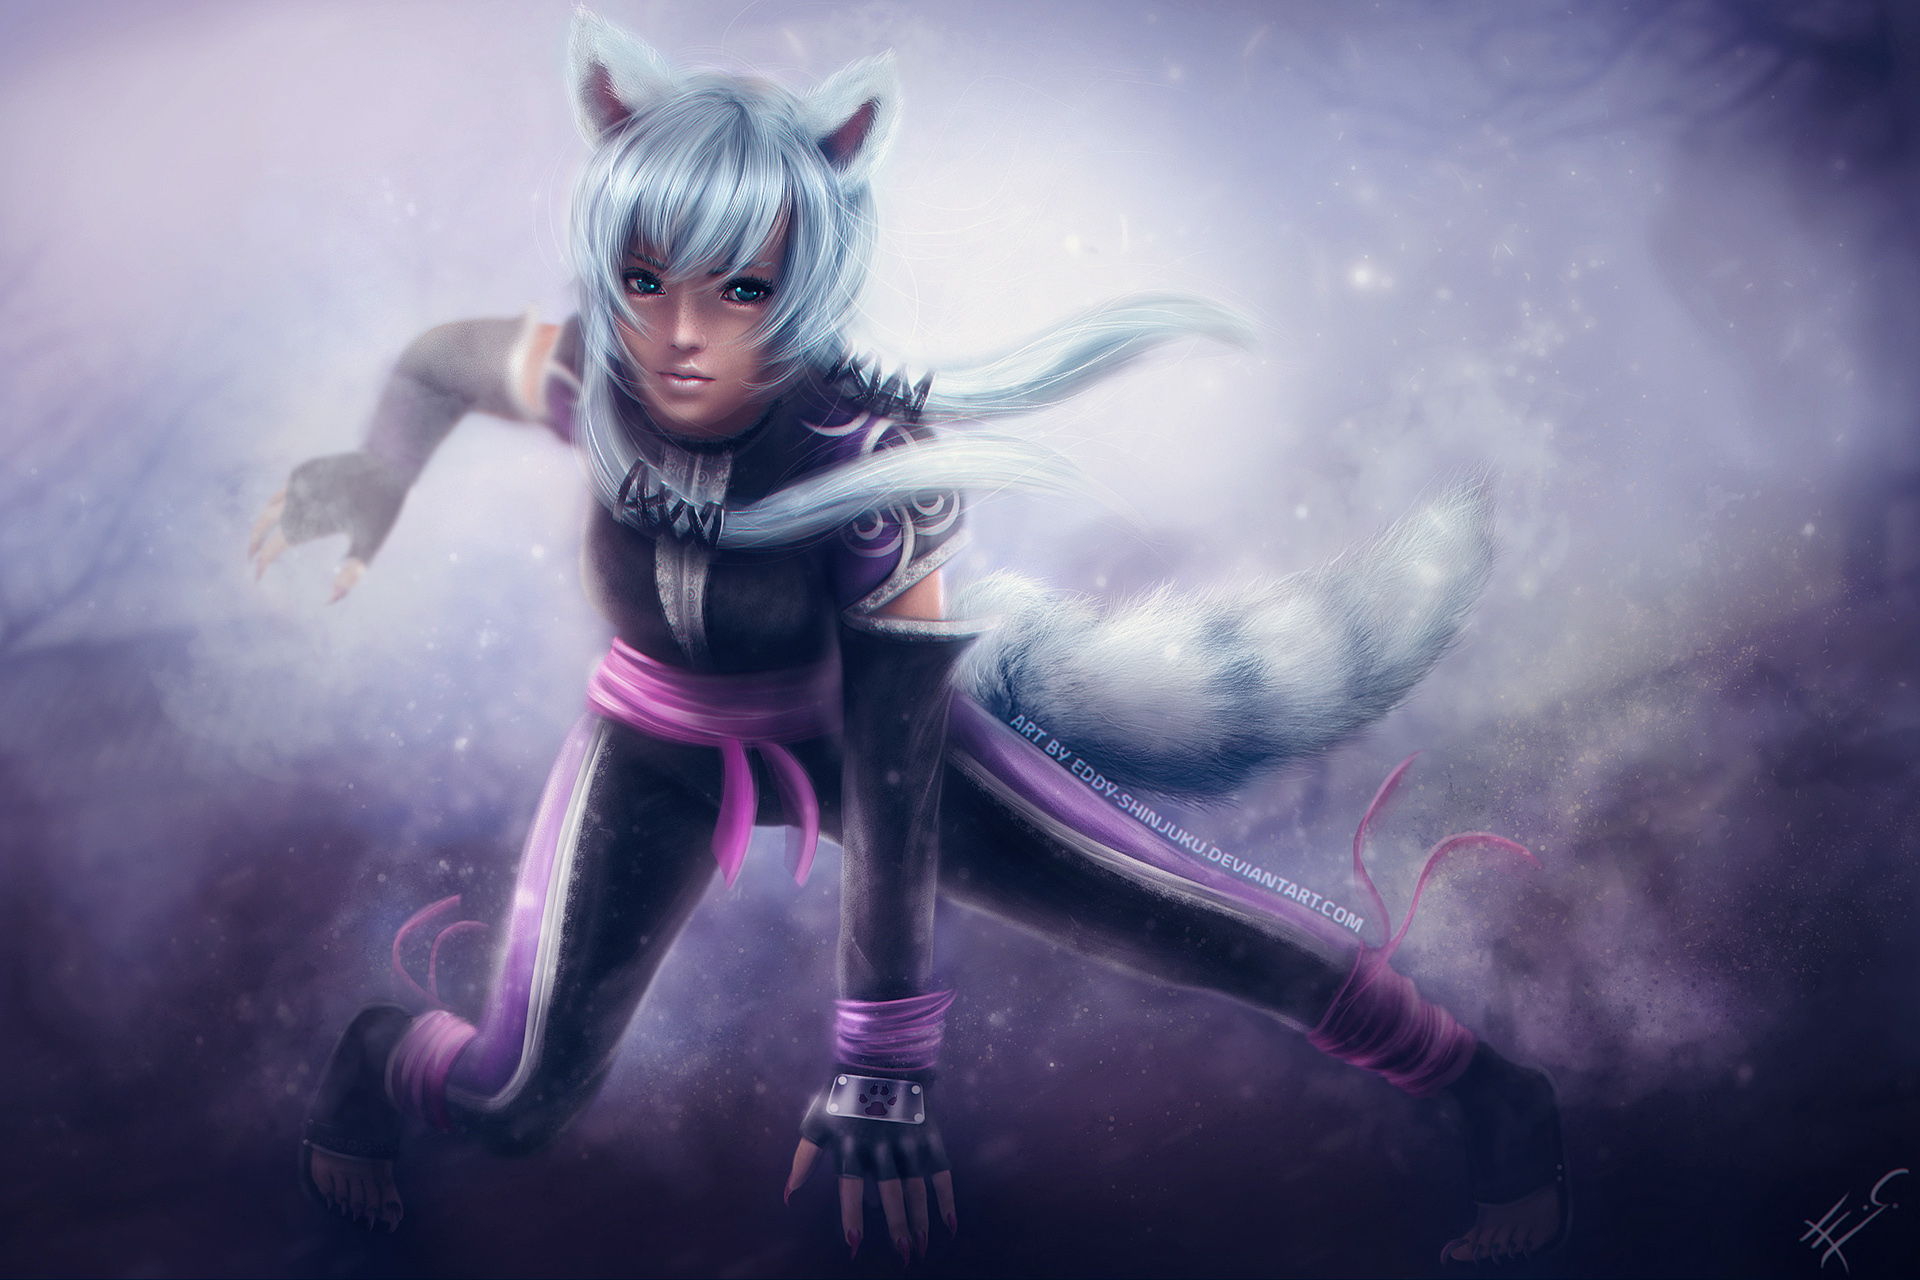 A U R O R A - Naruto OC Commission by Eddy-Shinjuku